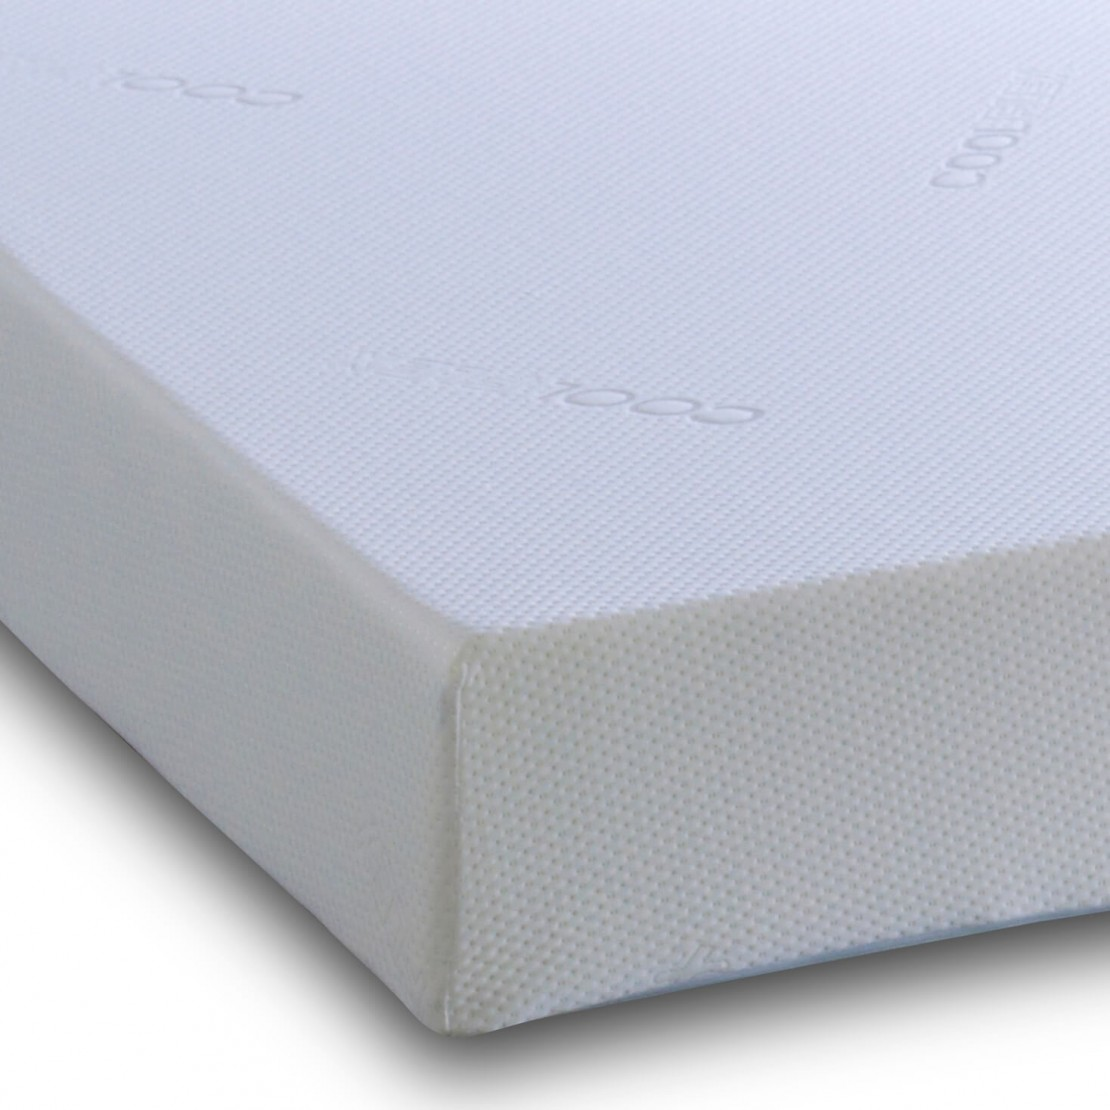 /_images/product-photos/visco-therapy-memory-foam-5000-regular-matrress-a.jpg